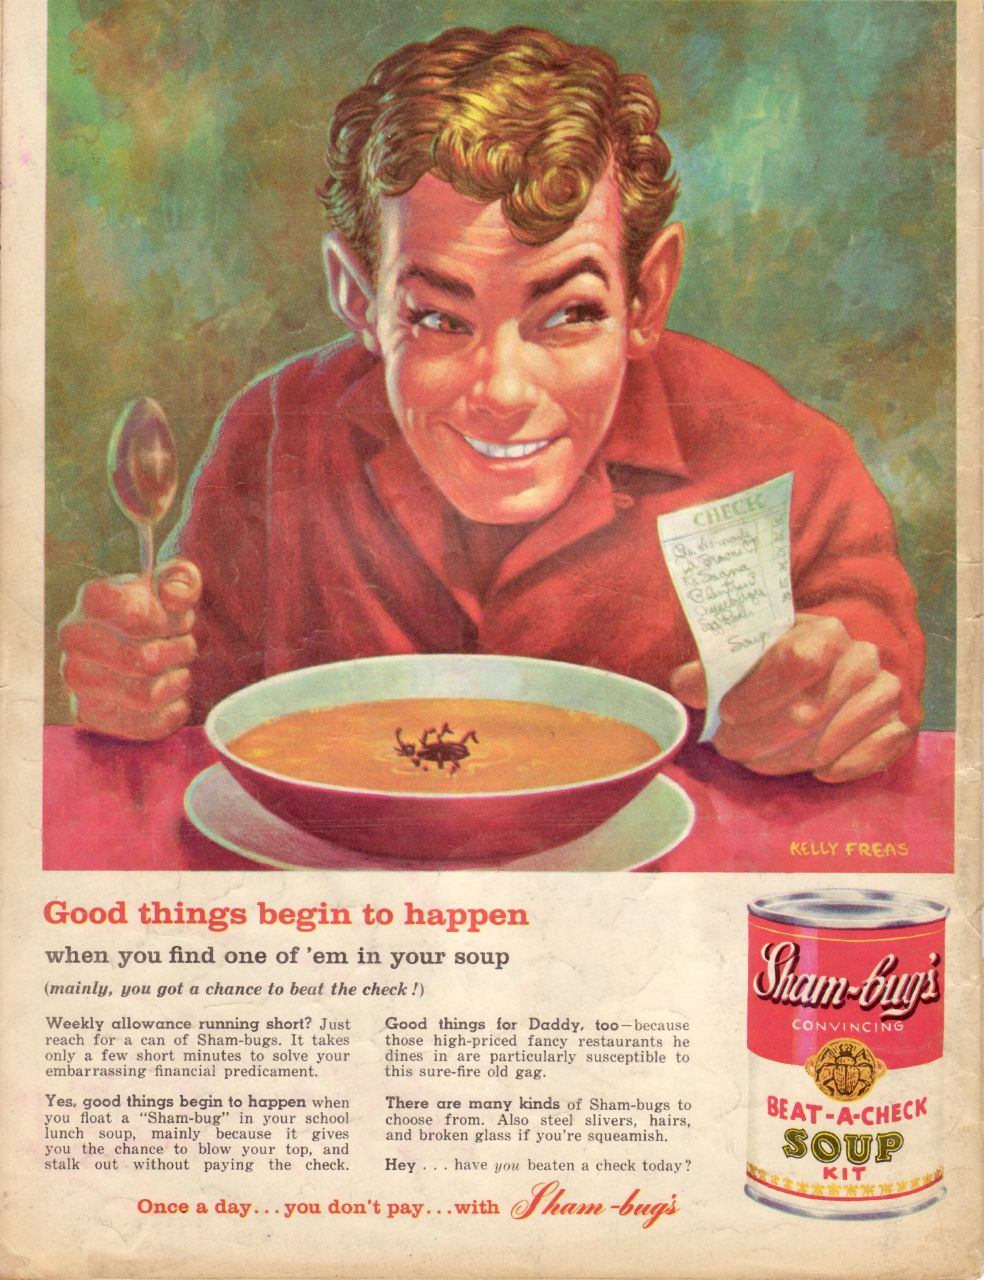 MAD Magazine September 1960